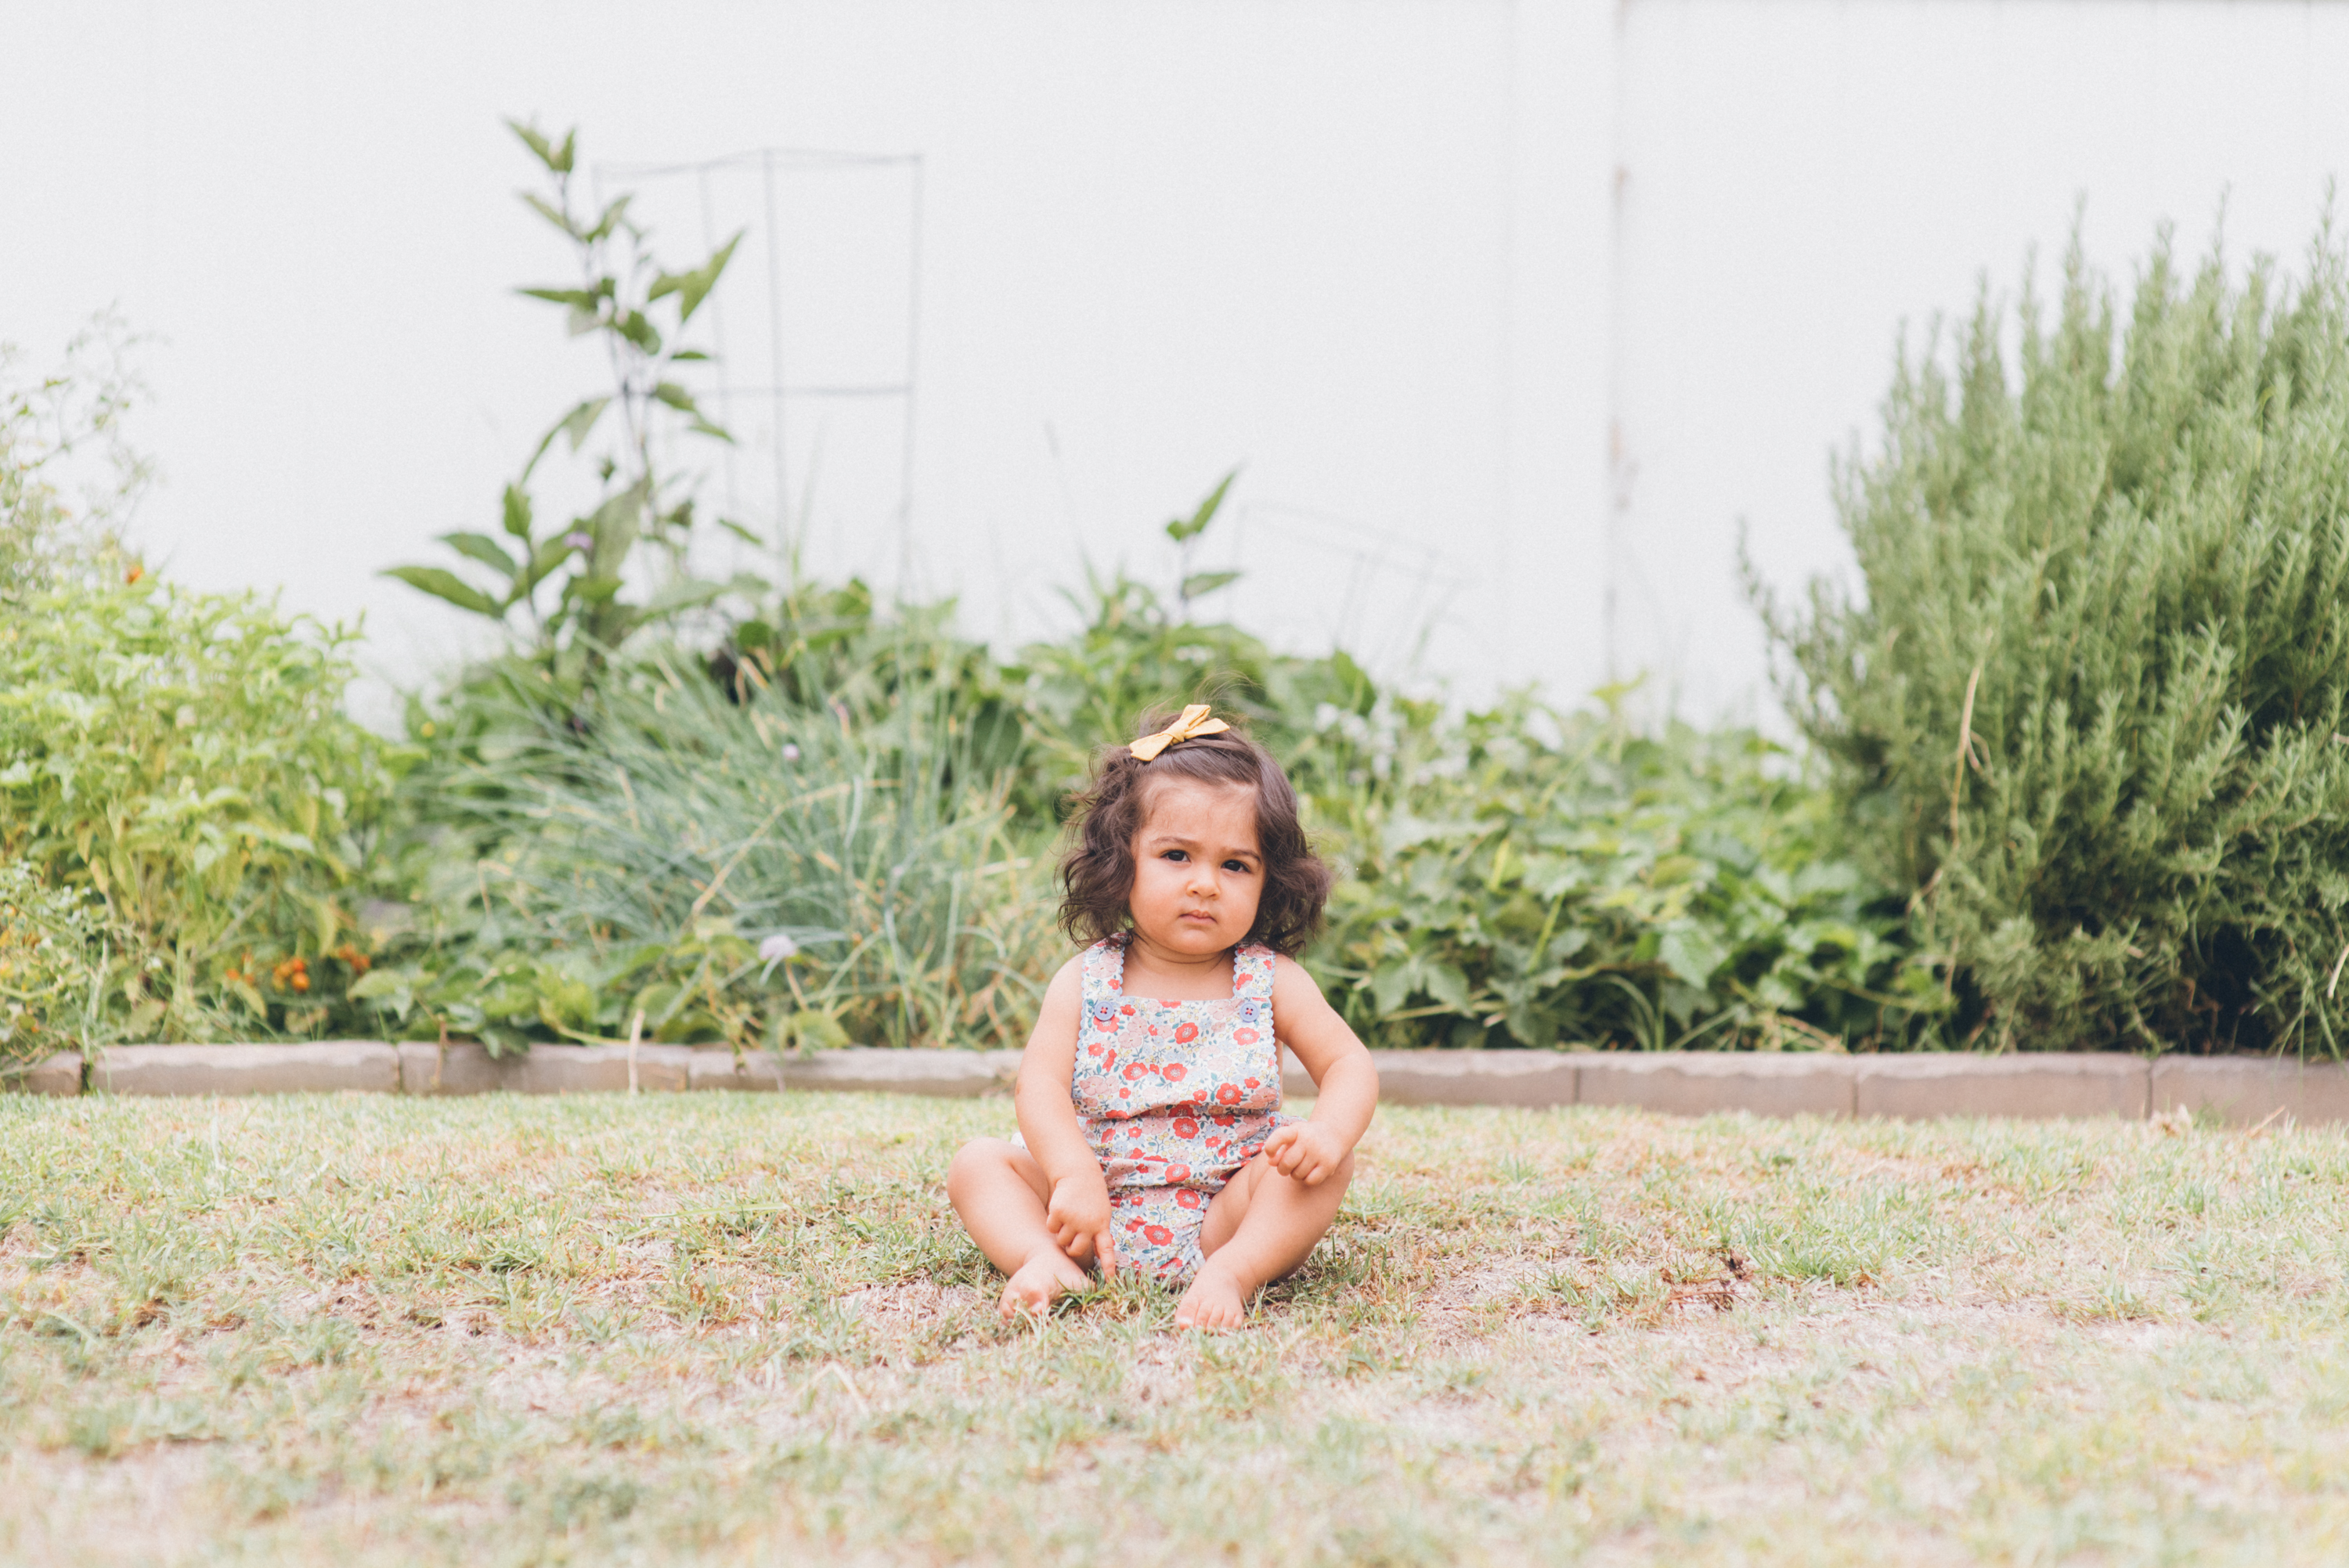 Child photography in Burbank, CA